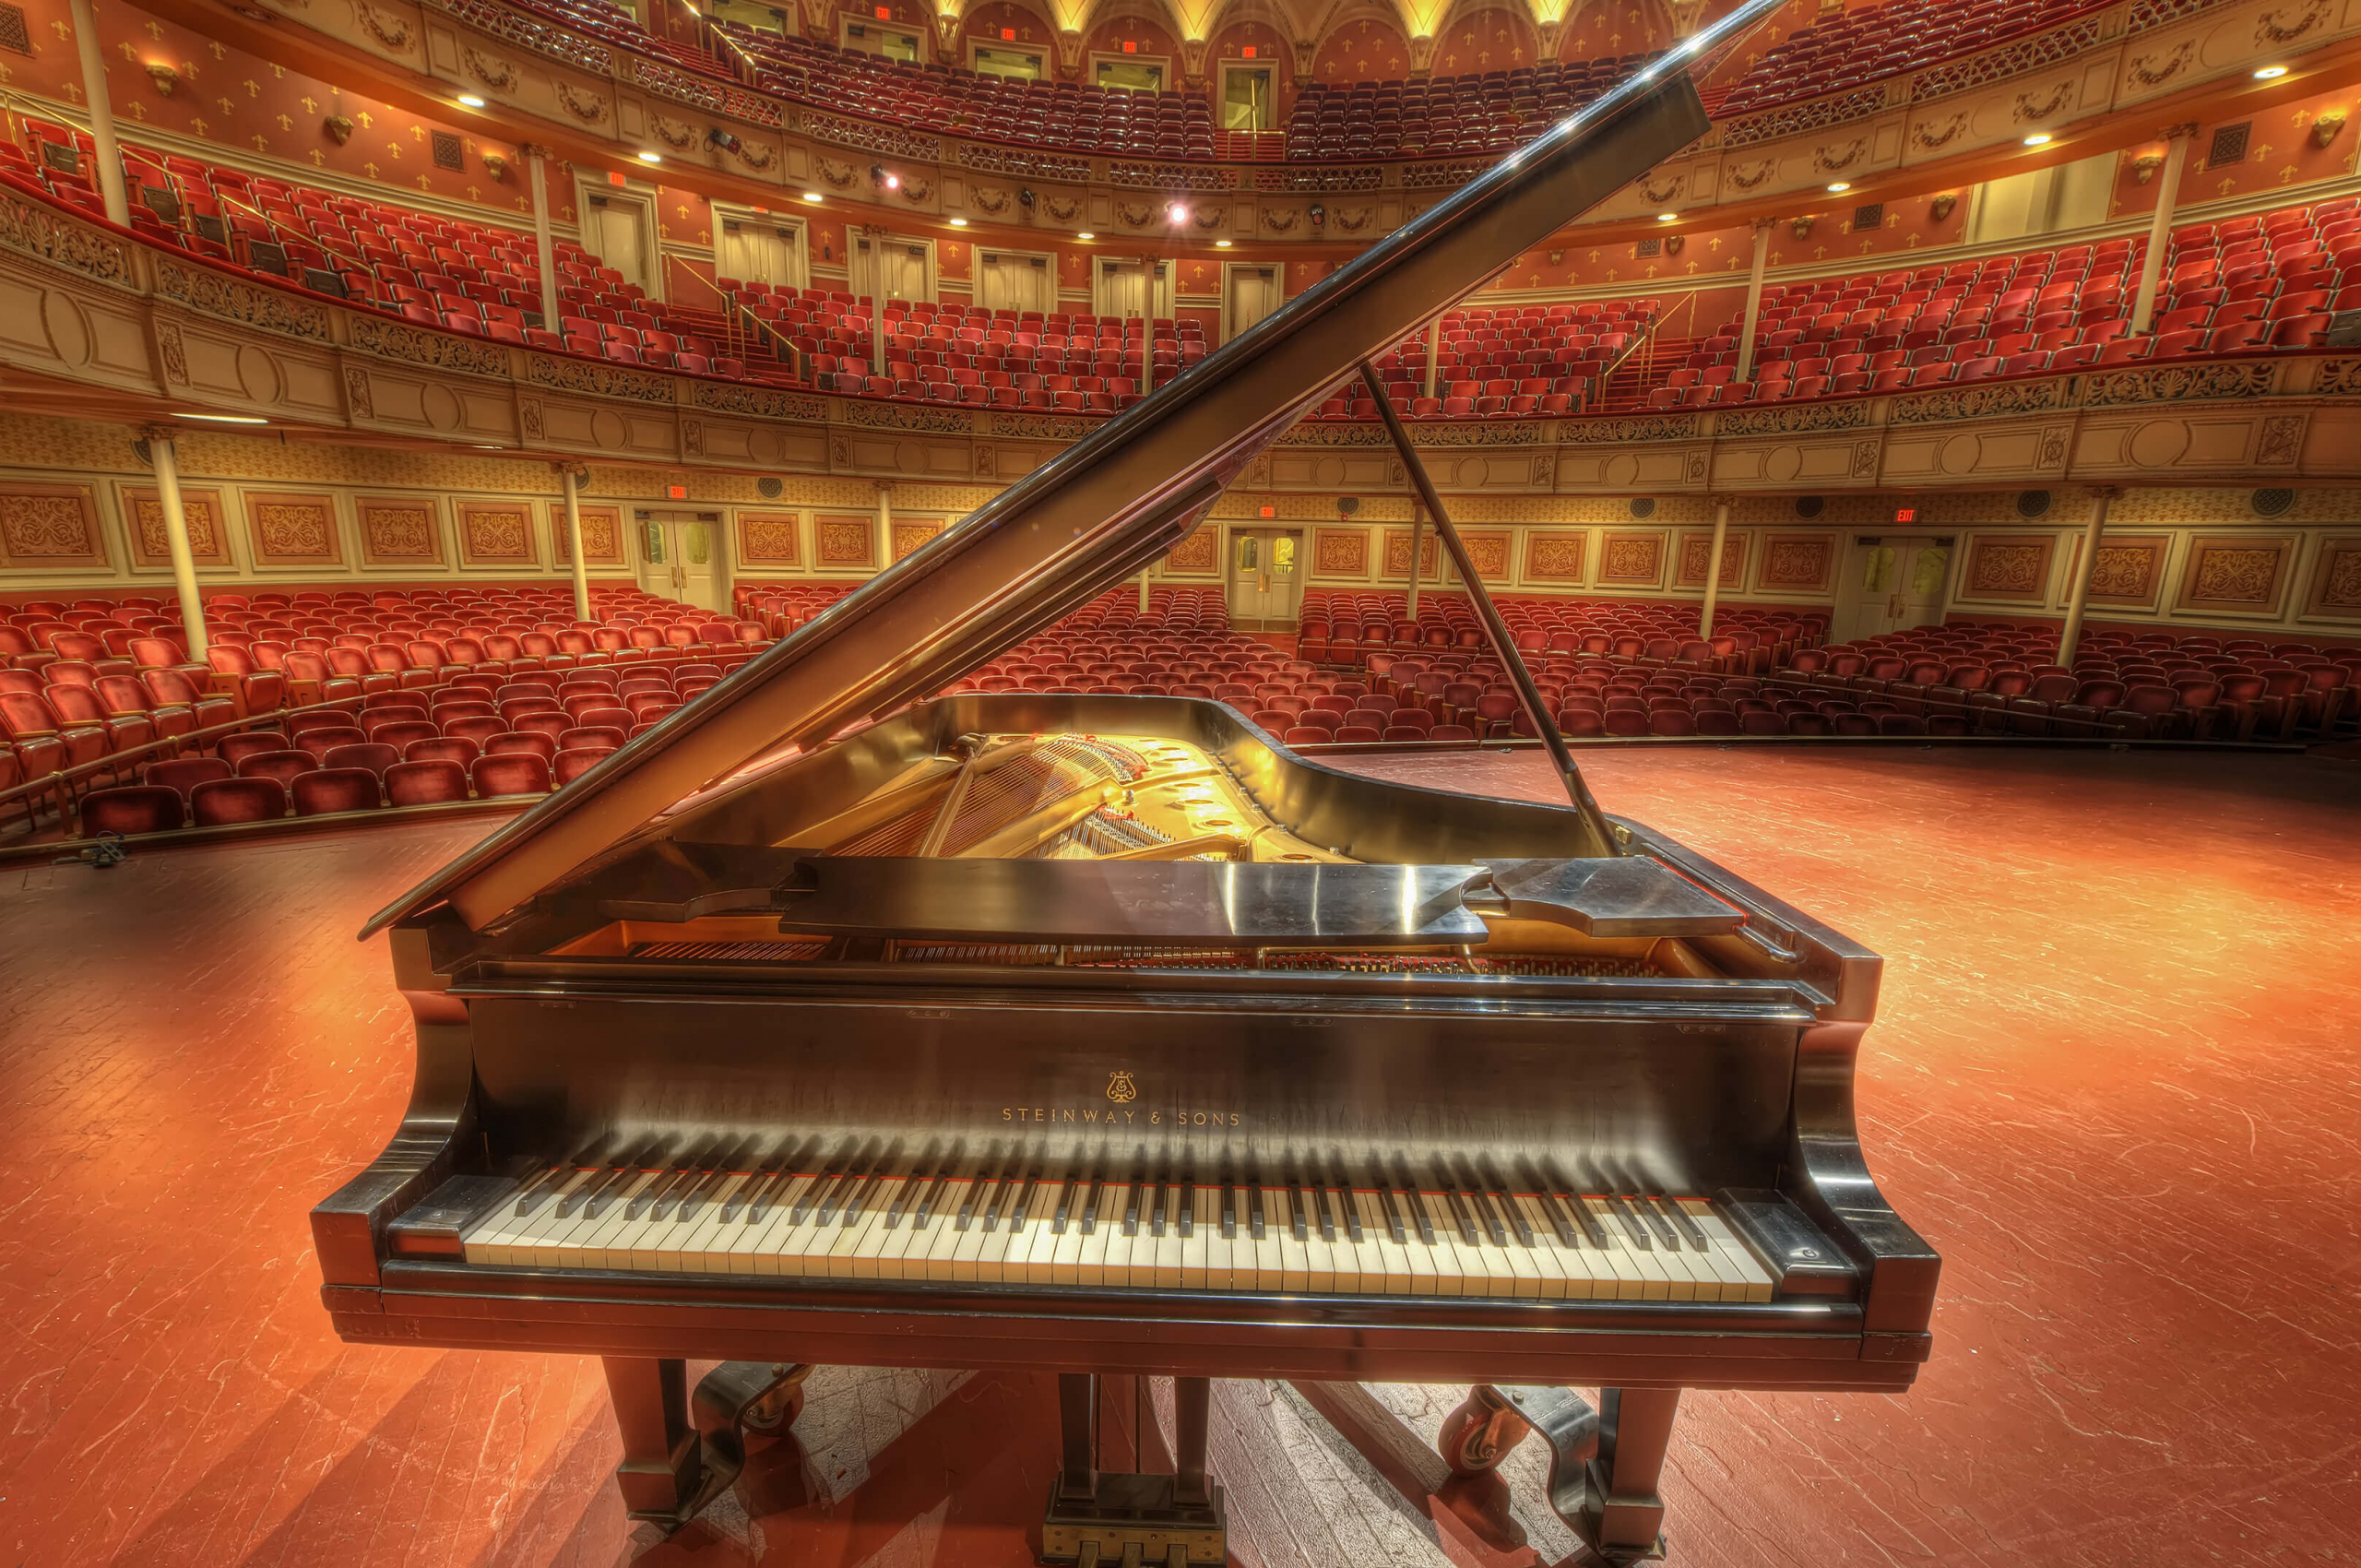 Free Download Steinway Sons Piano At Carnegie Music Hall Pittsburgh 4k Wallpaper 3840x2160 For Your Desktop Mobile Tablet Explore 13 Harpsichord Wallpapers Harpsichord Wallpapers